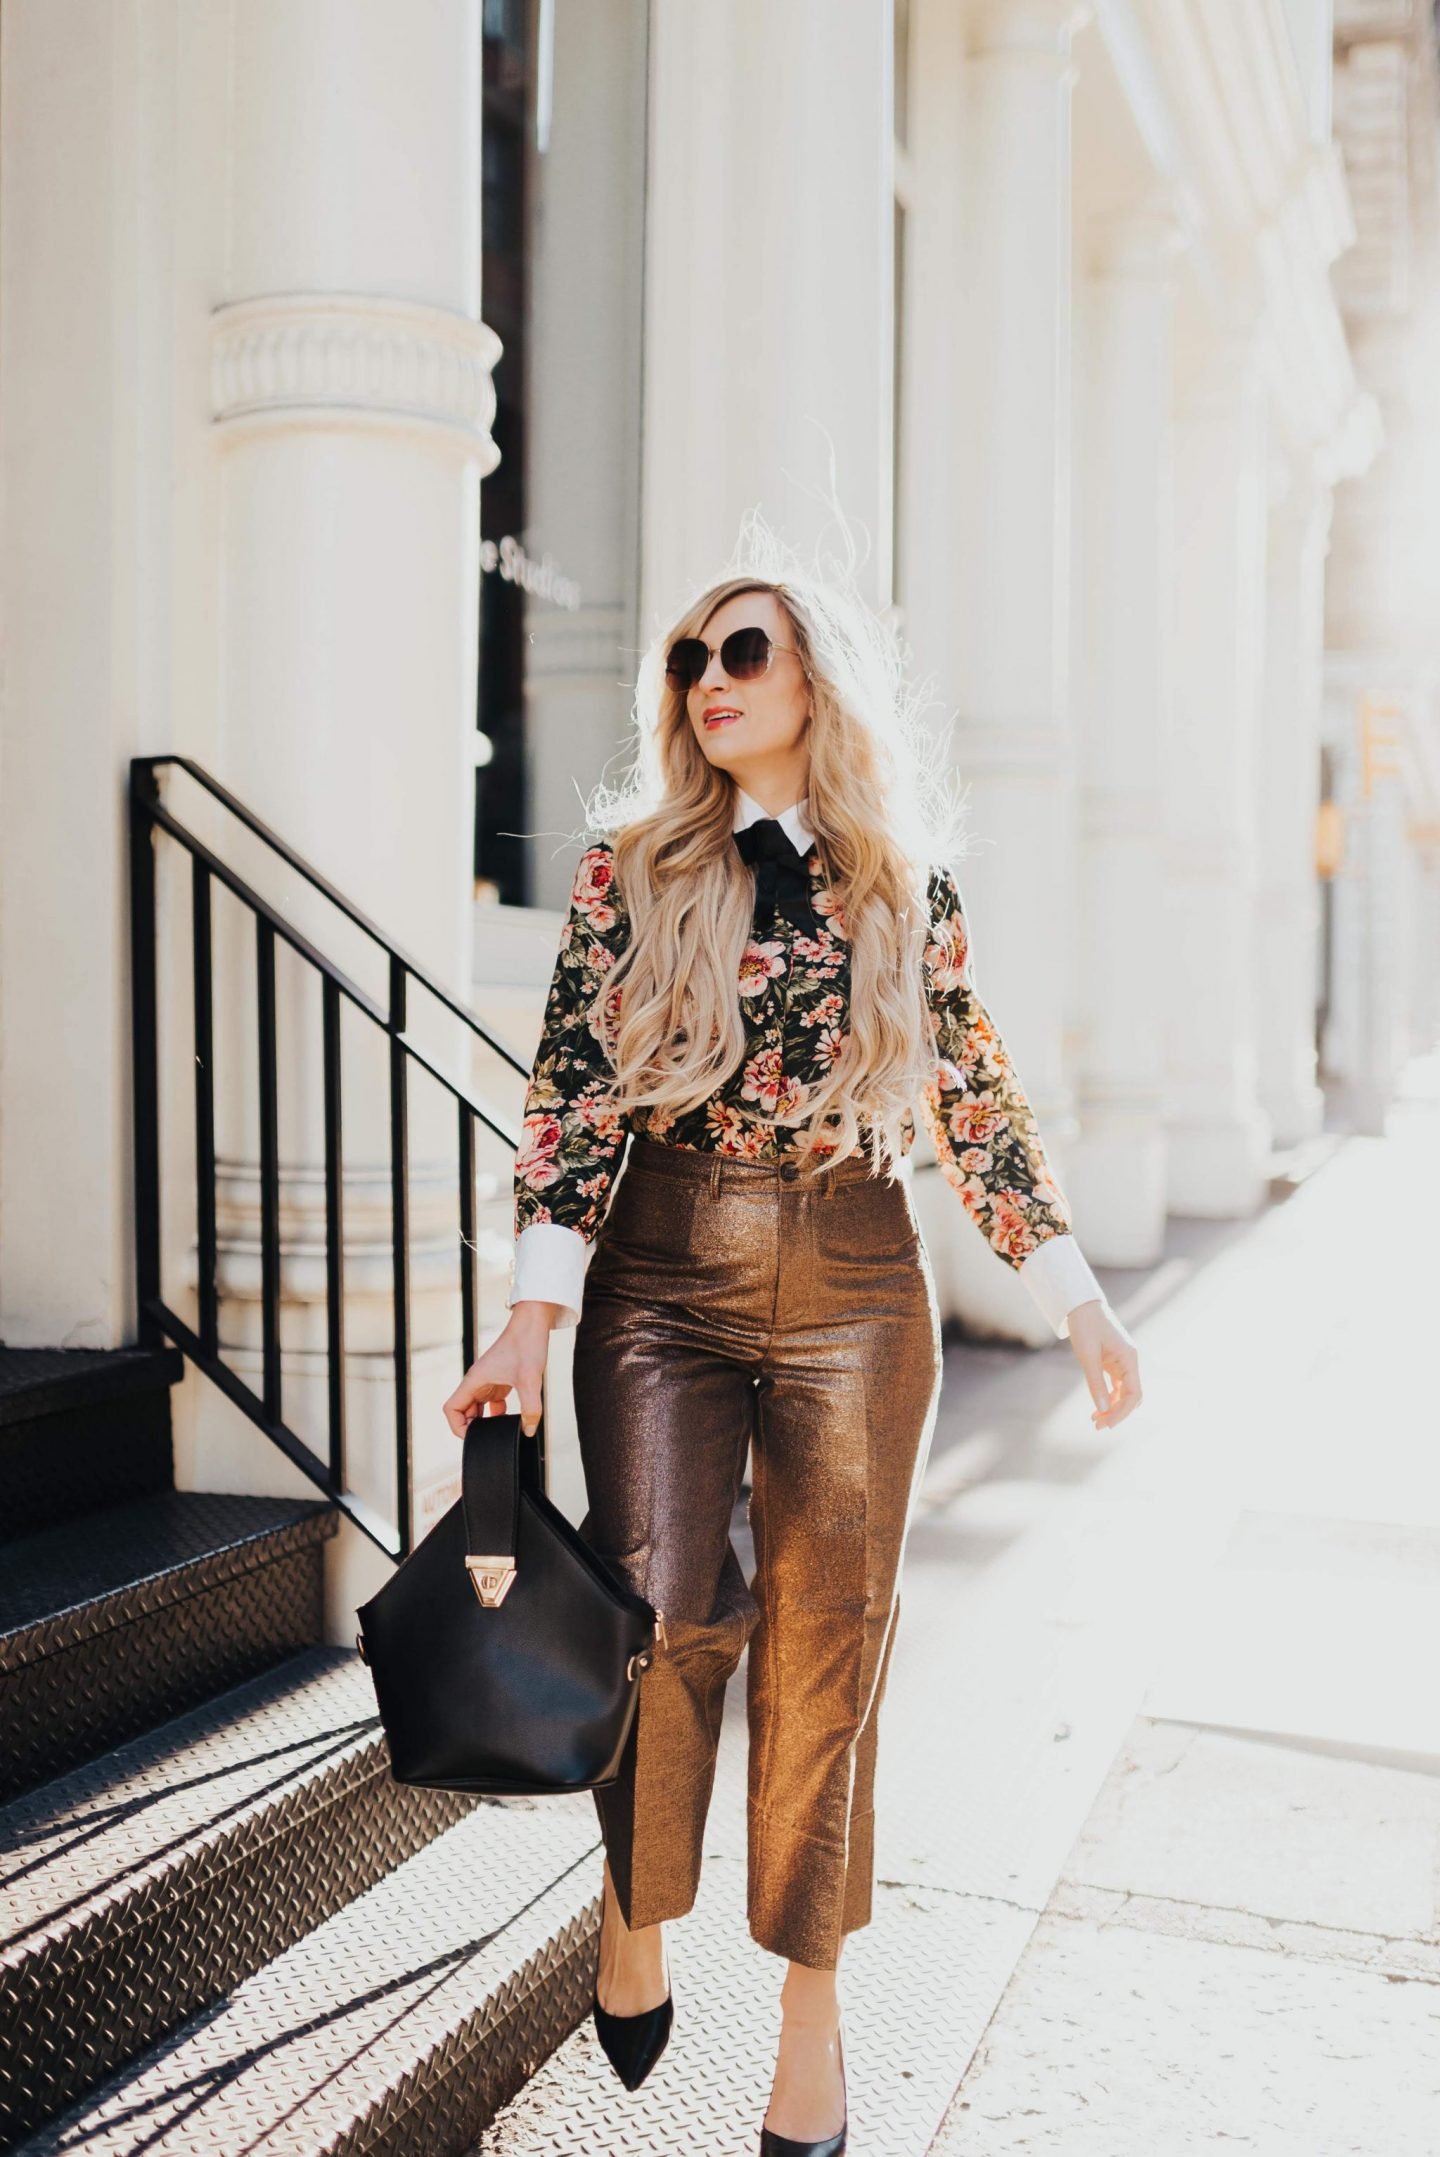 woman wearing floral top and bronze metallic culottes walking in new york